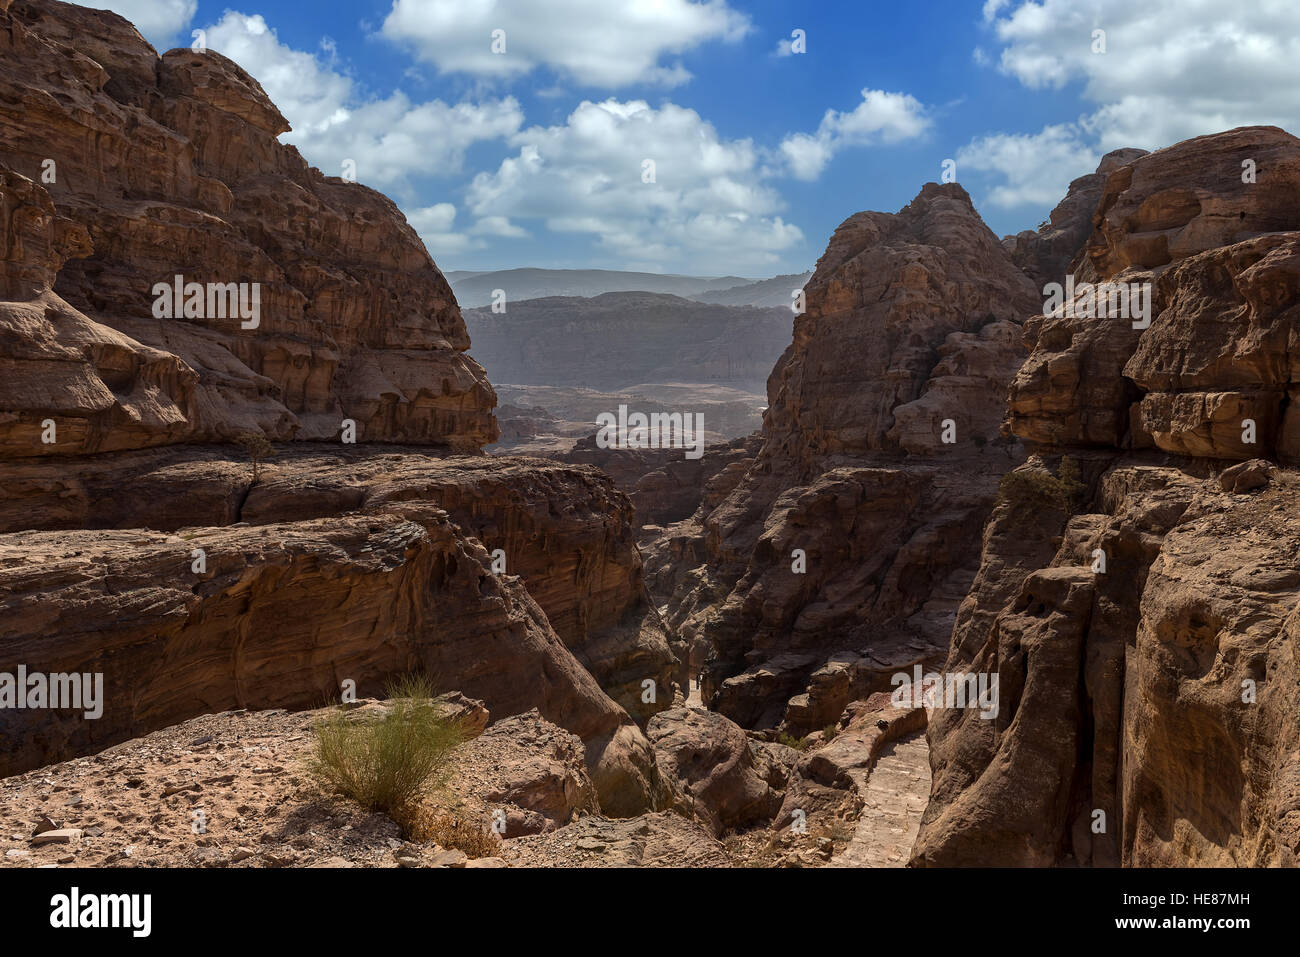 Belles Pierres et la nature à Petra, Jordanie Photo Stock